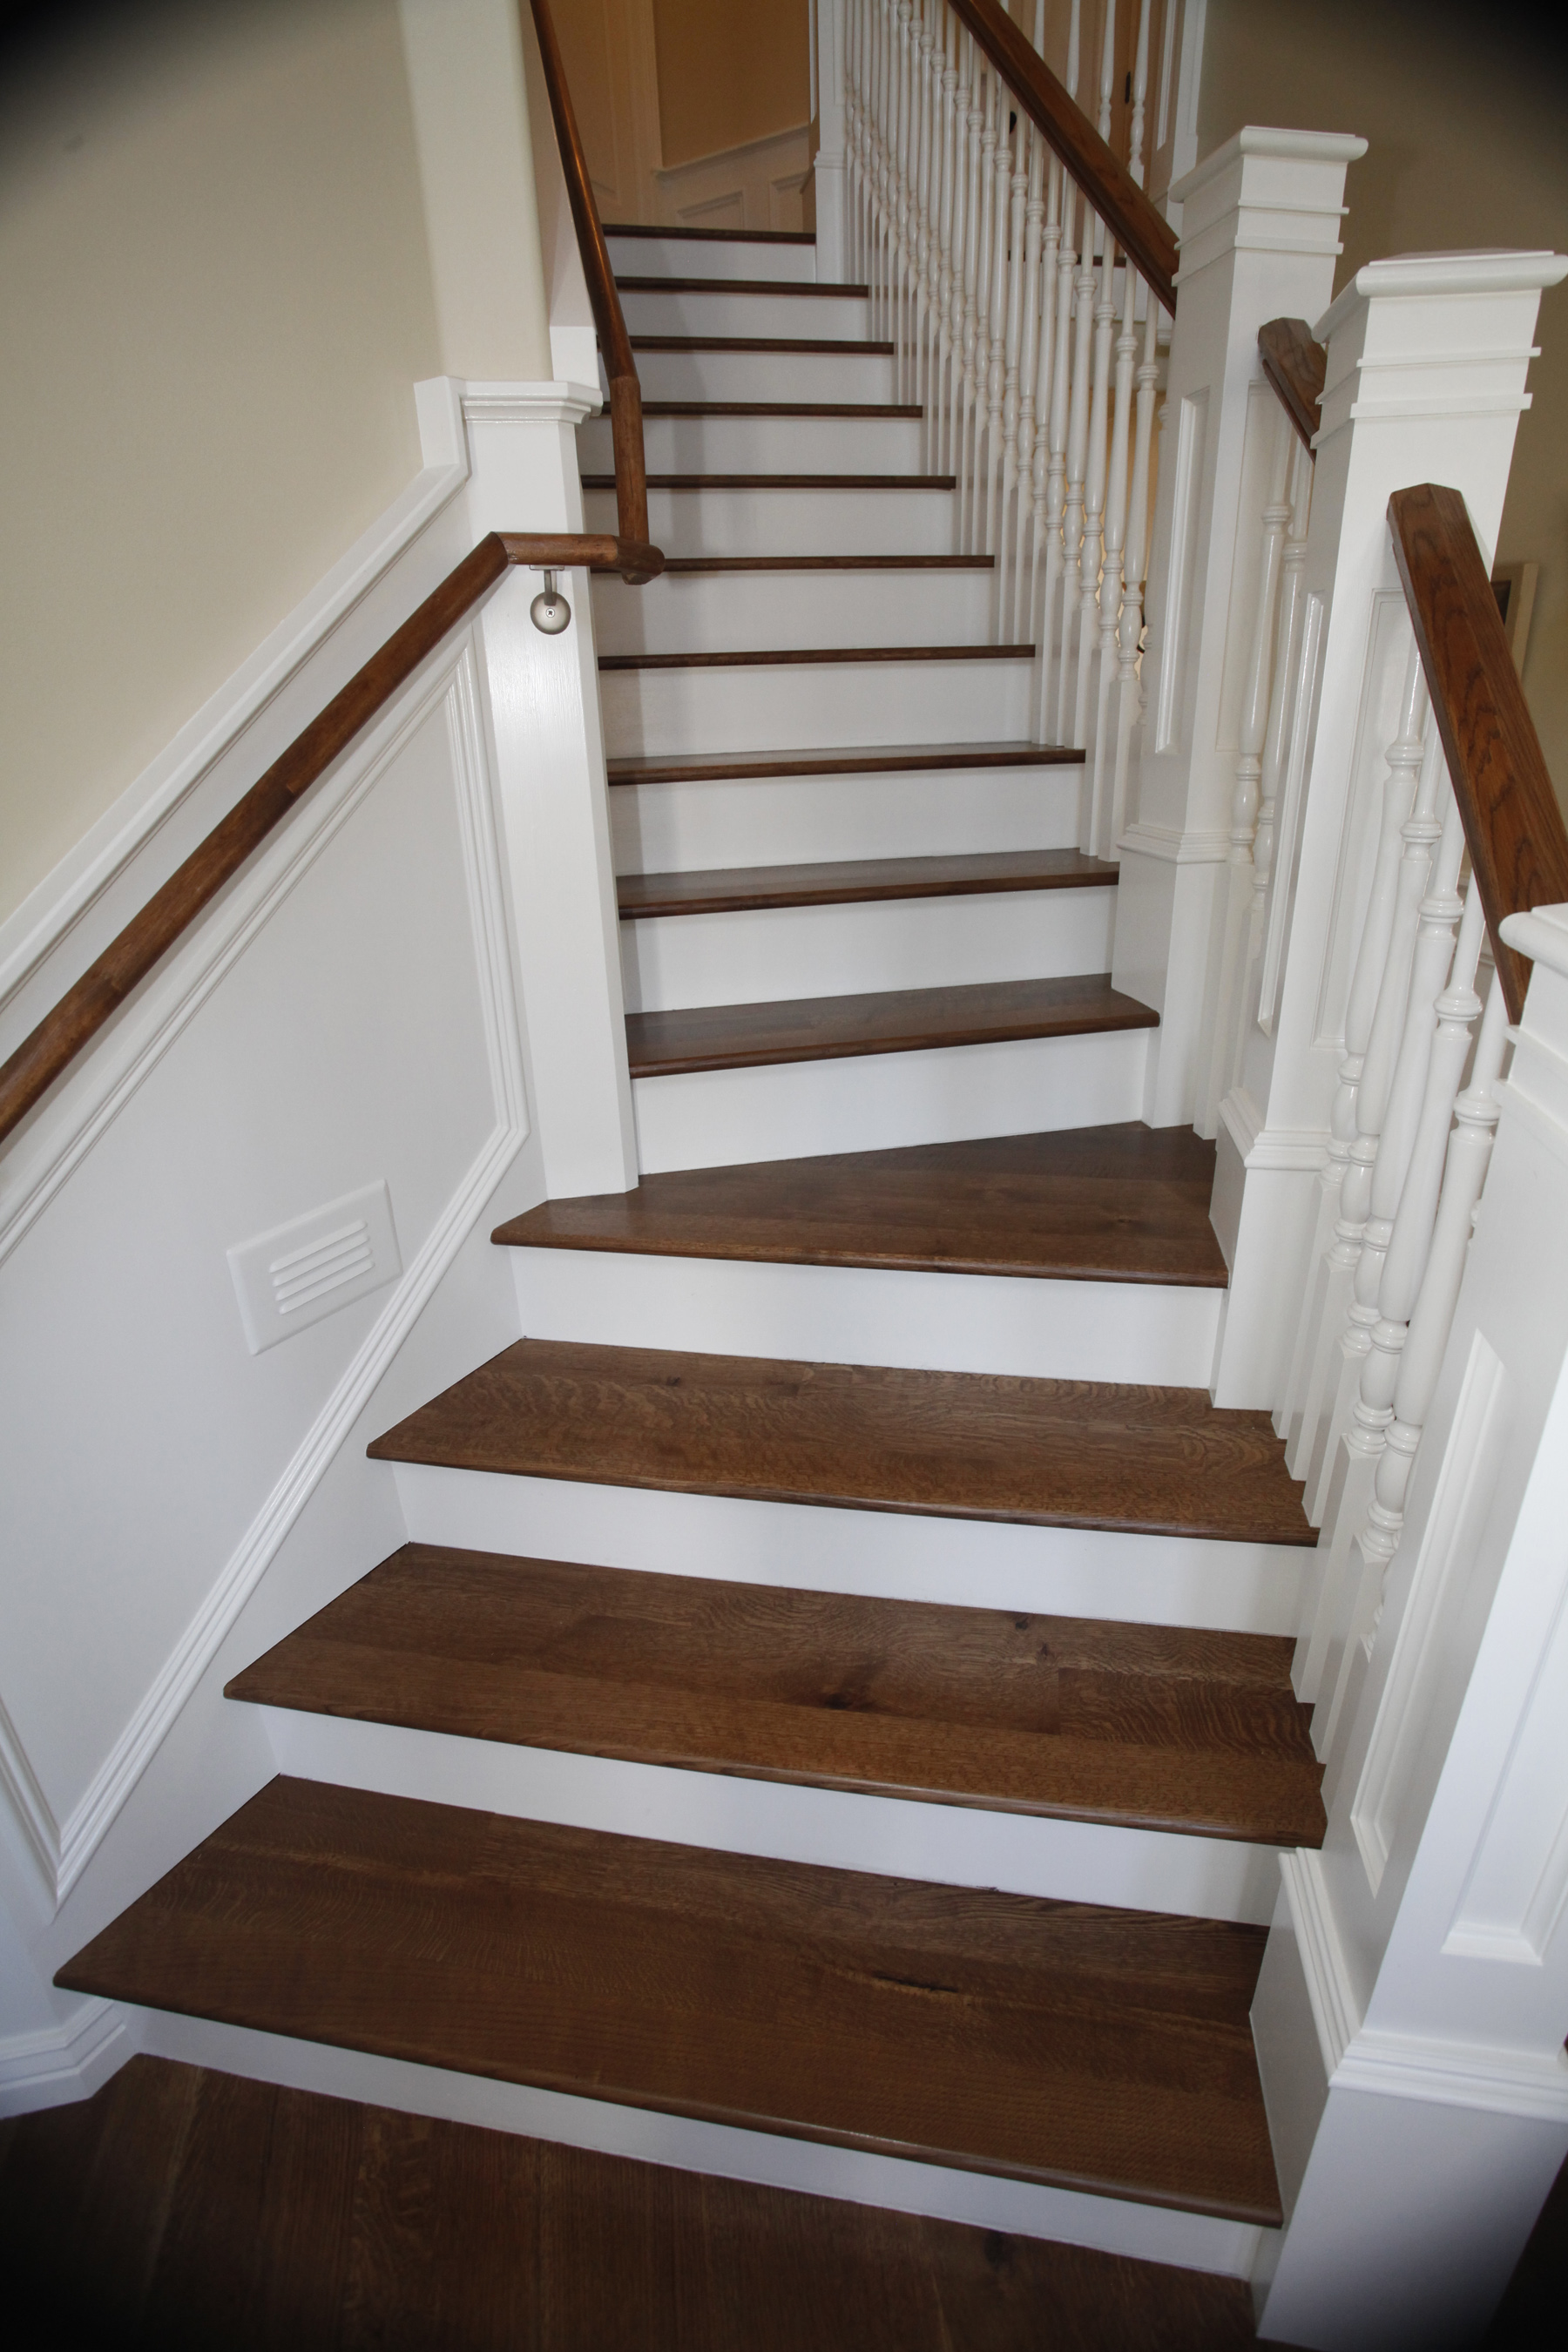 How to Install Prefinished Wood Flooring on Stairs Home Guides SF